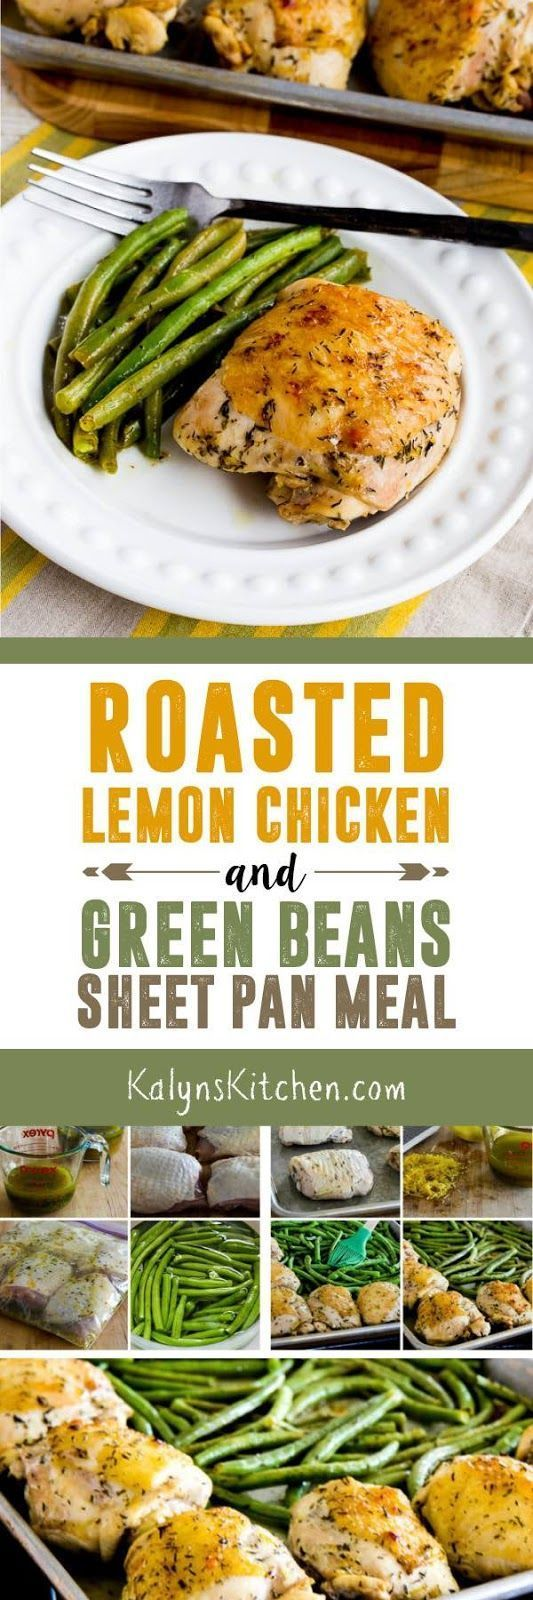 Roasted Lemon Chicken and Green Beans Sheet Pan Meal (Video)